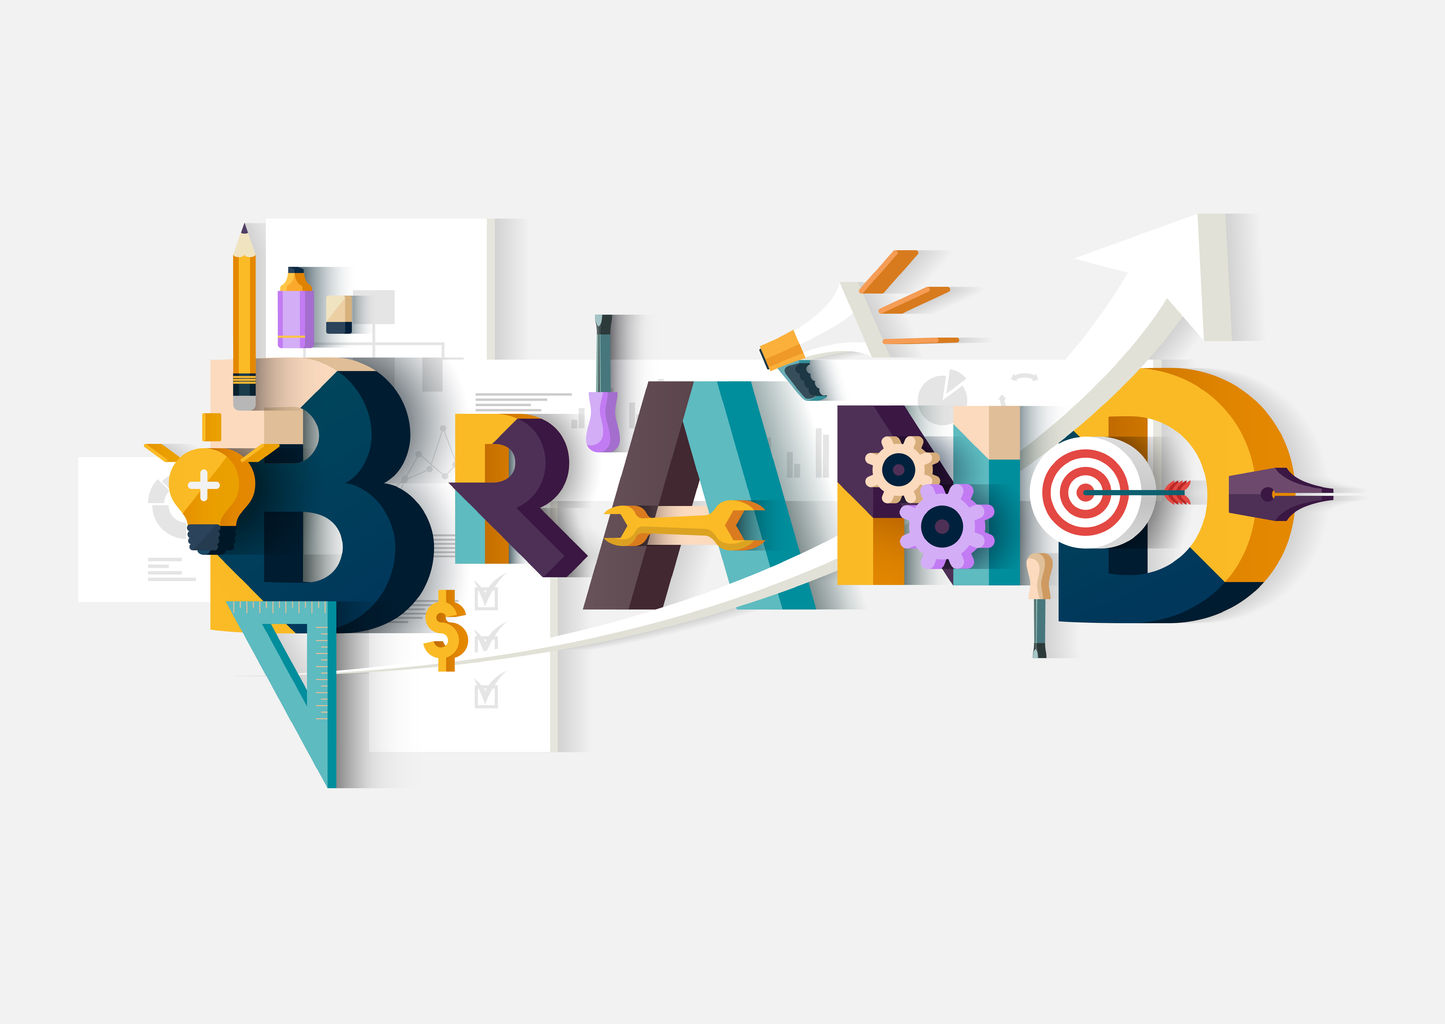 Find Best Online Marketing Services To Promote Your Brand